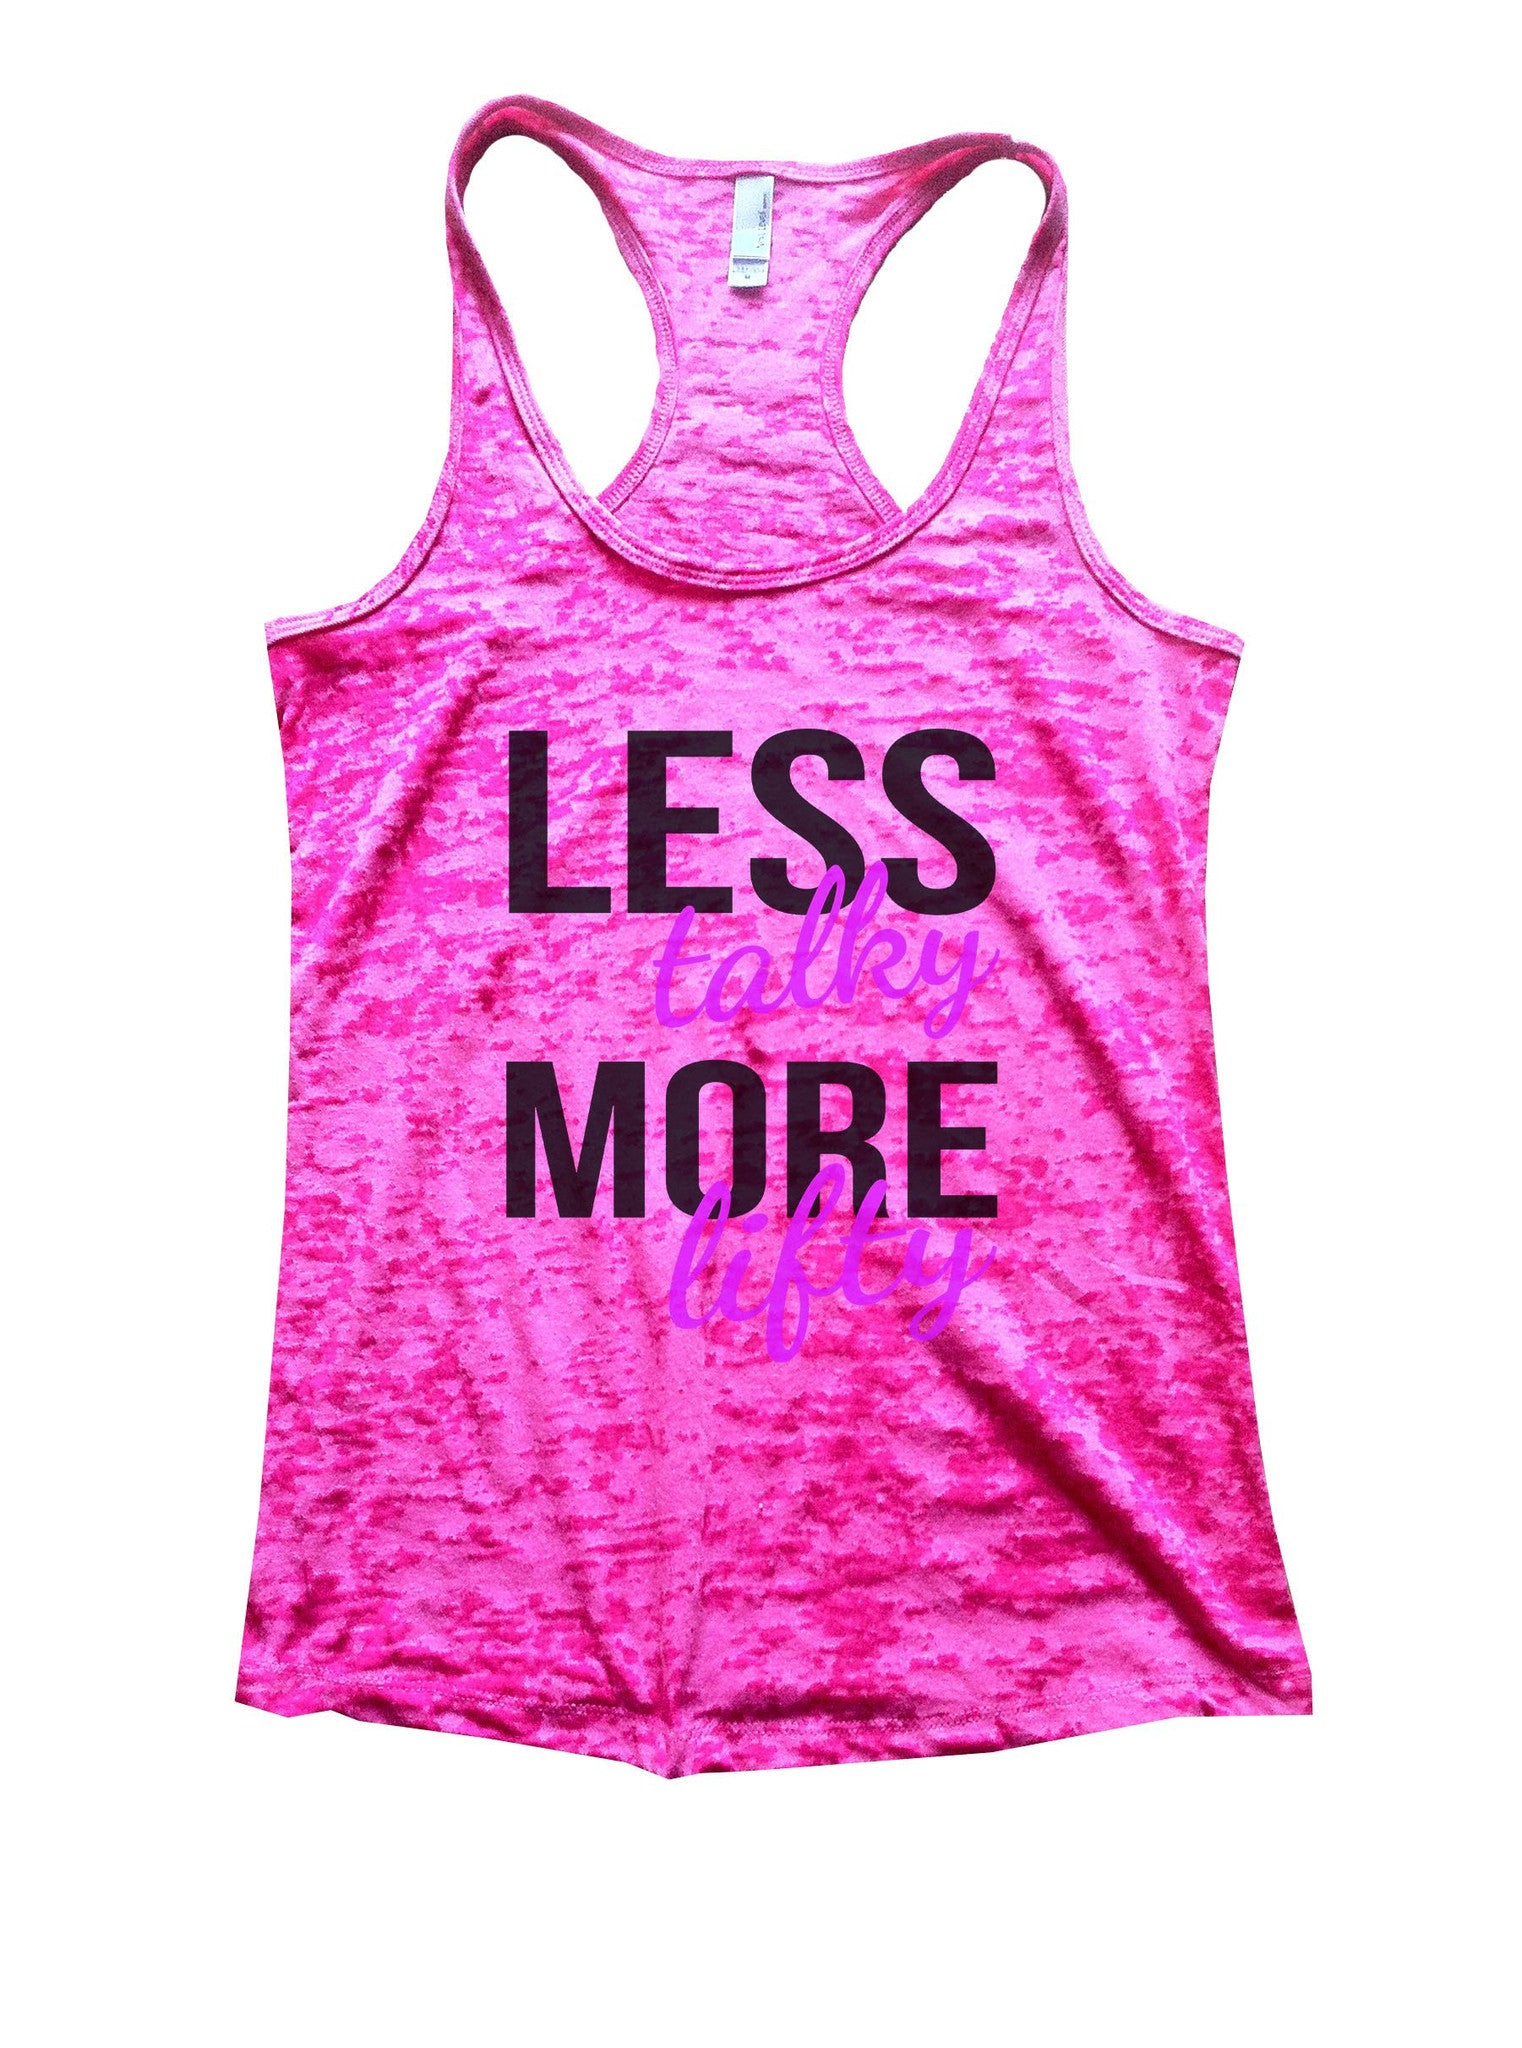 Less Talky More Lifty Burnout Tank Top By BurnoutTankTops.com - 874 - Funny Shirts Tank Tops Burnouts and Triblends  - 3